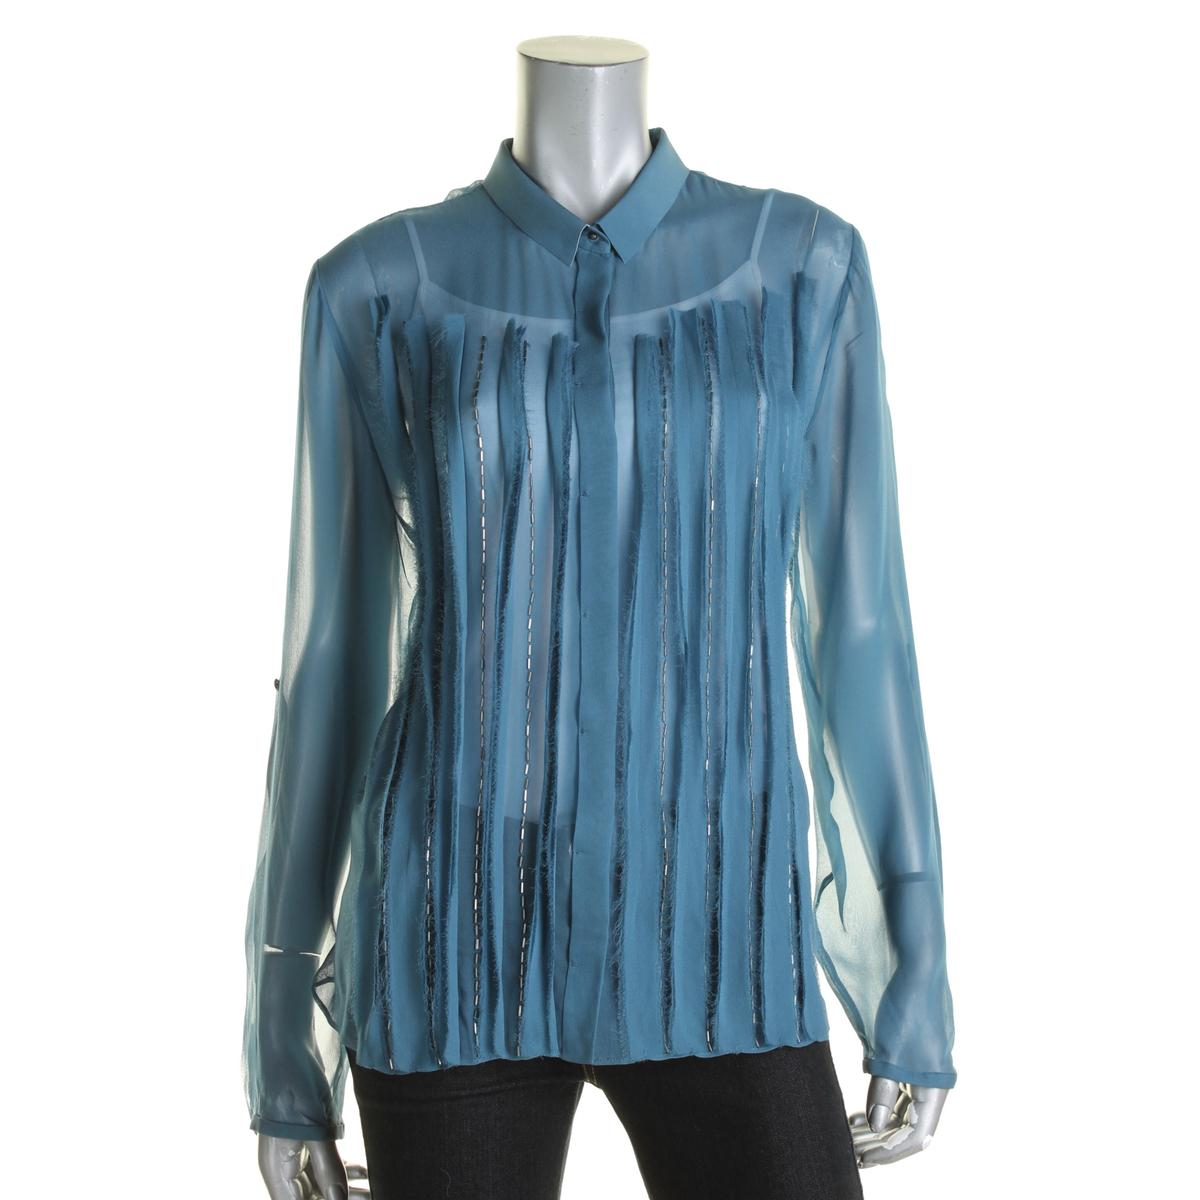 Find great deals on eBay for beaded blouses. Shop with confidence.